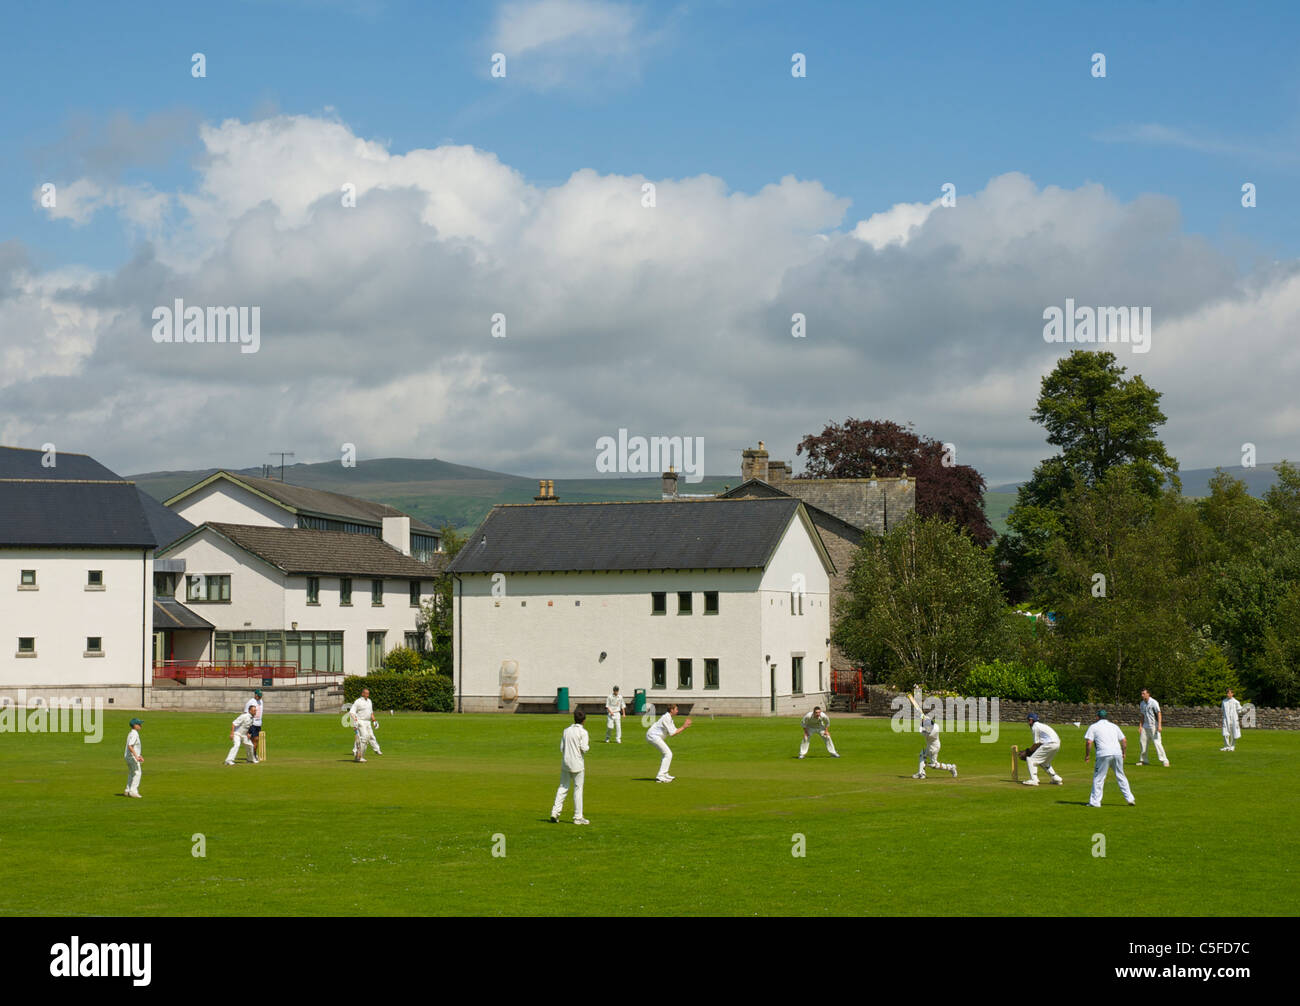 Cricket match at Queen Elizabeth School, Kirkby Lonsdale, Cumbria England UK - Stock Image